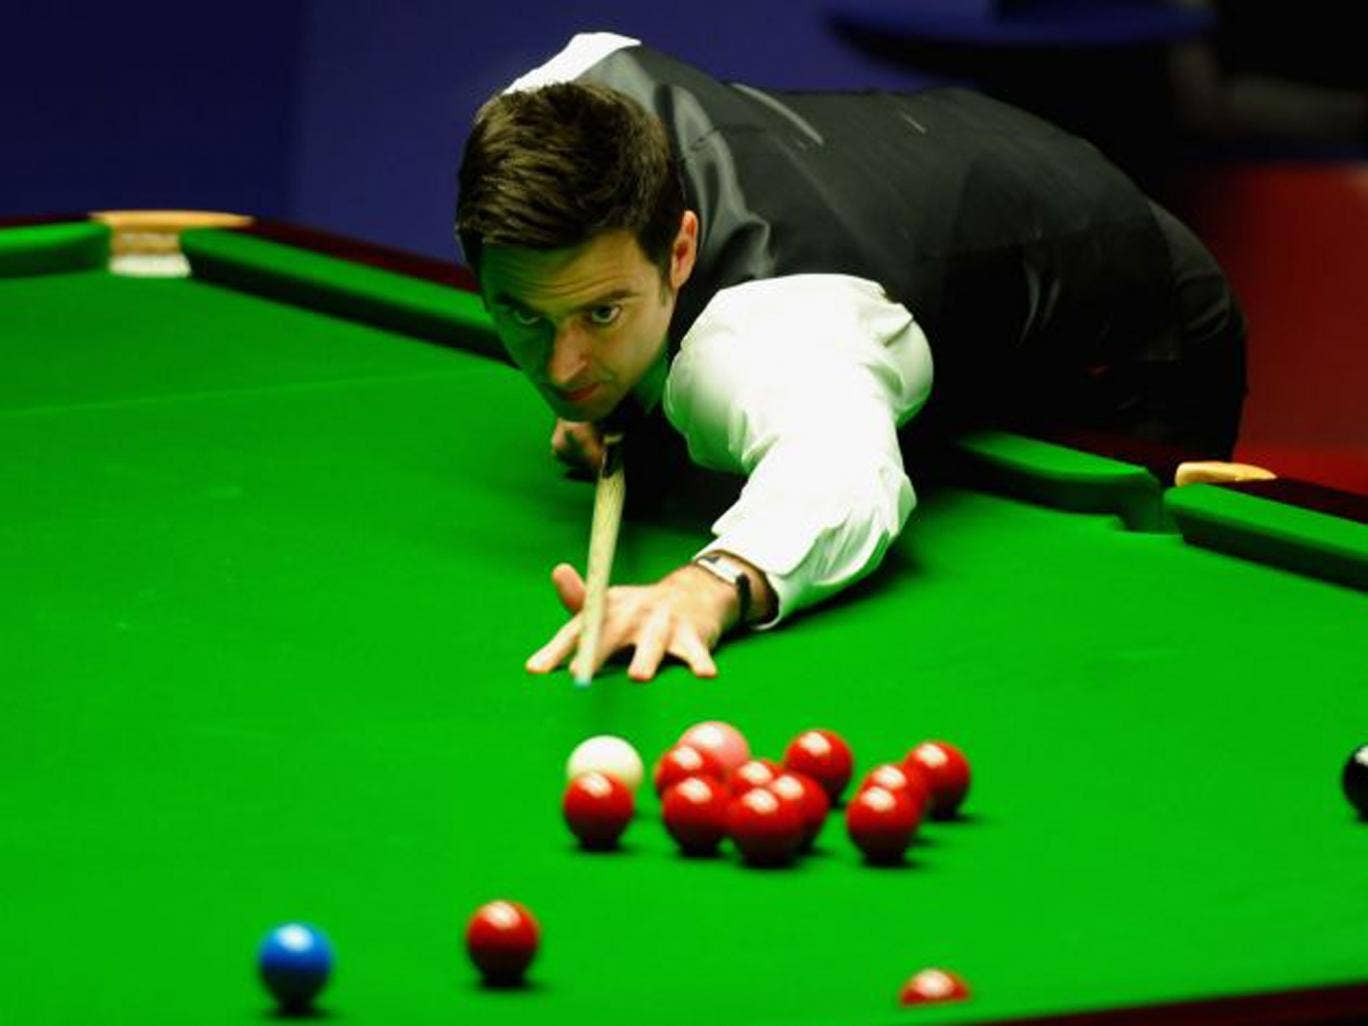 Ronnie O'Sullivan is back on the green baize